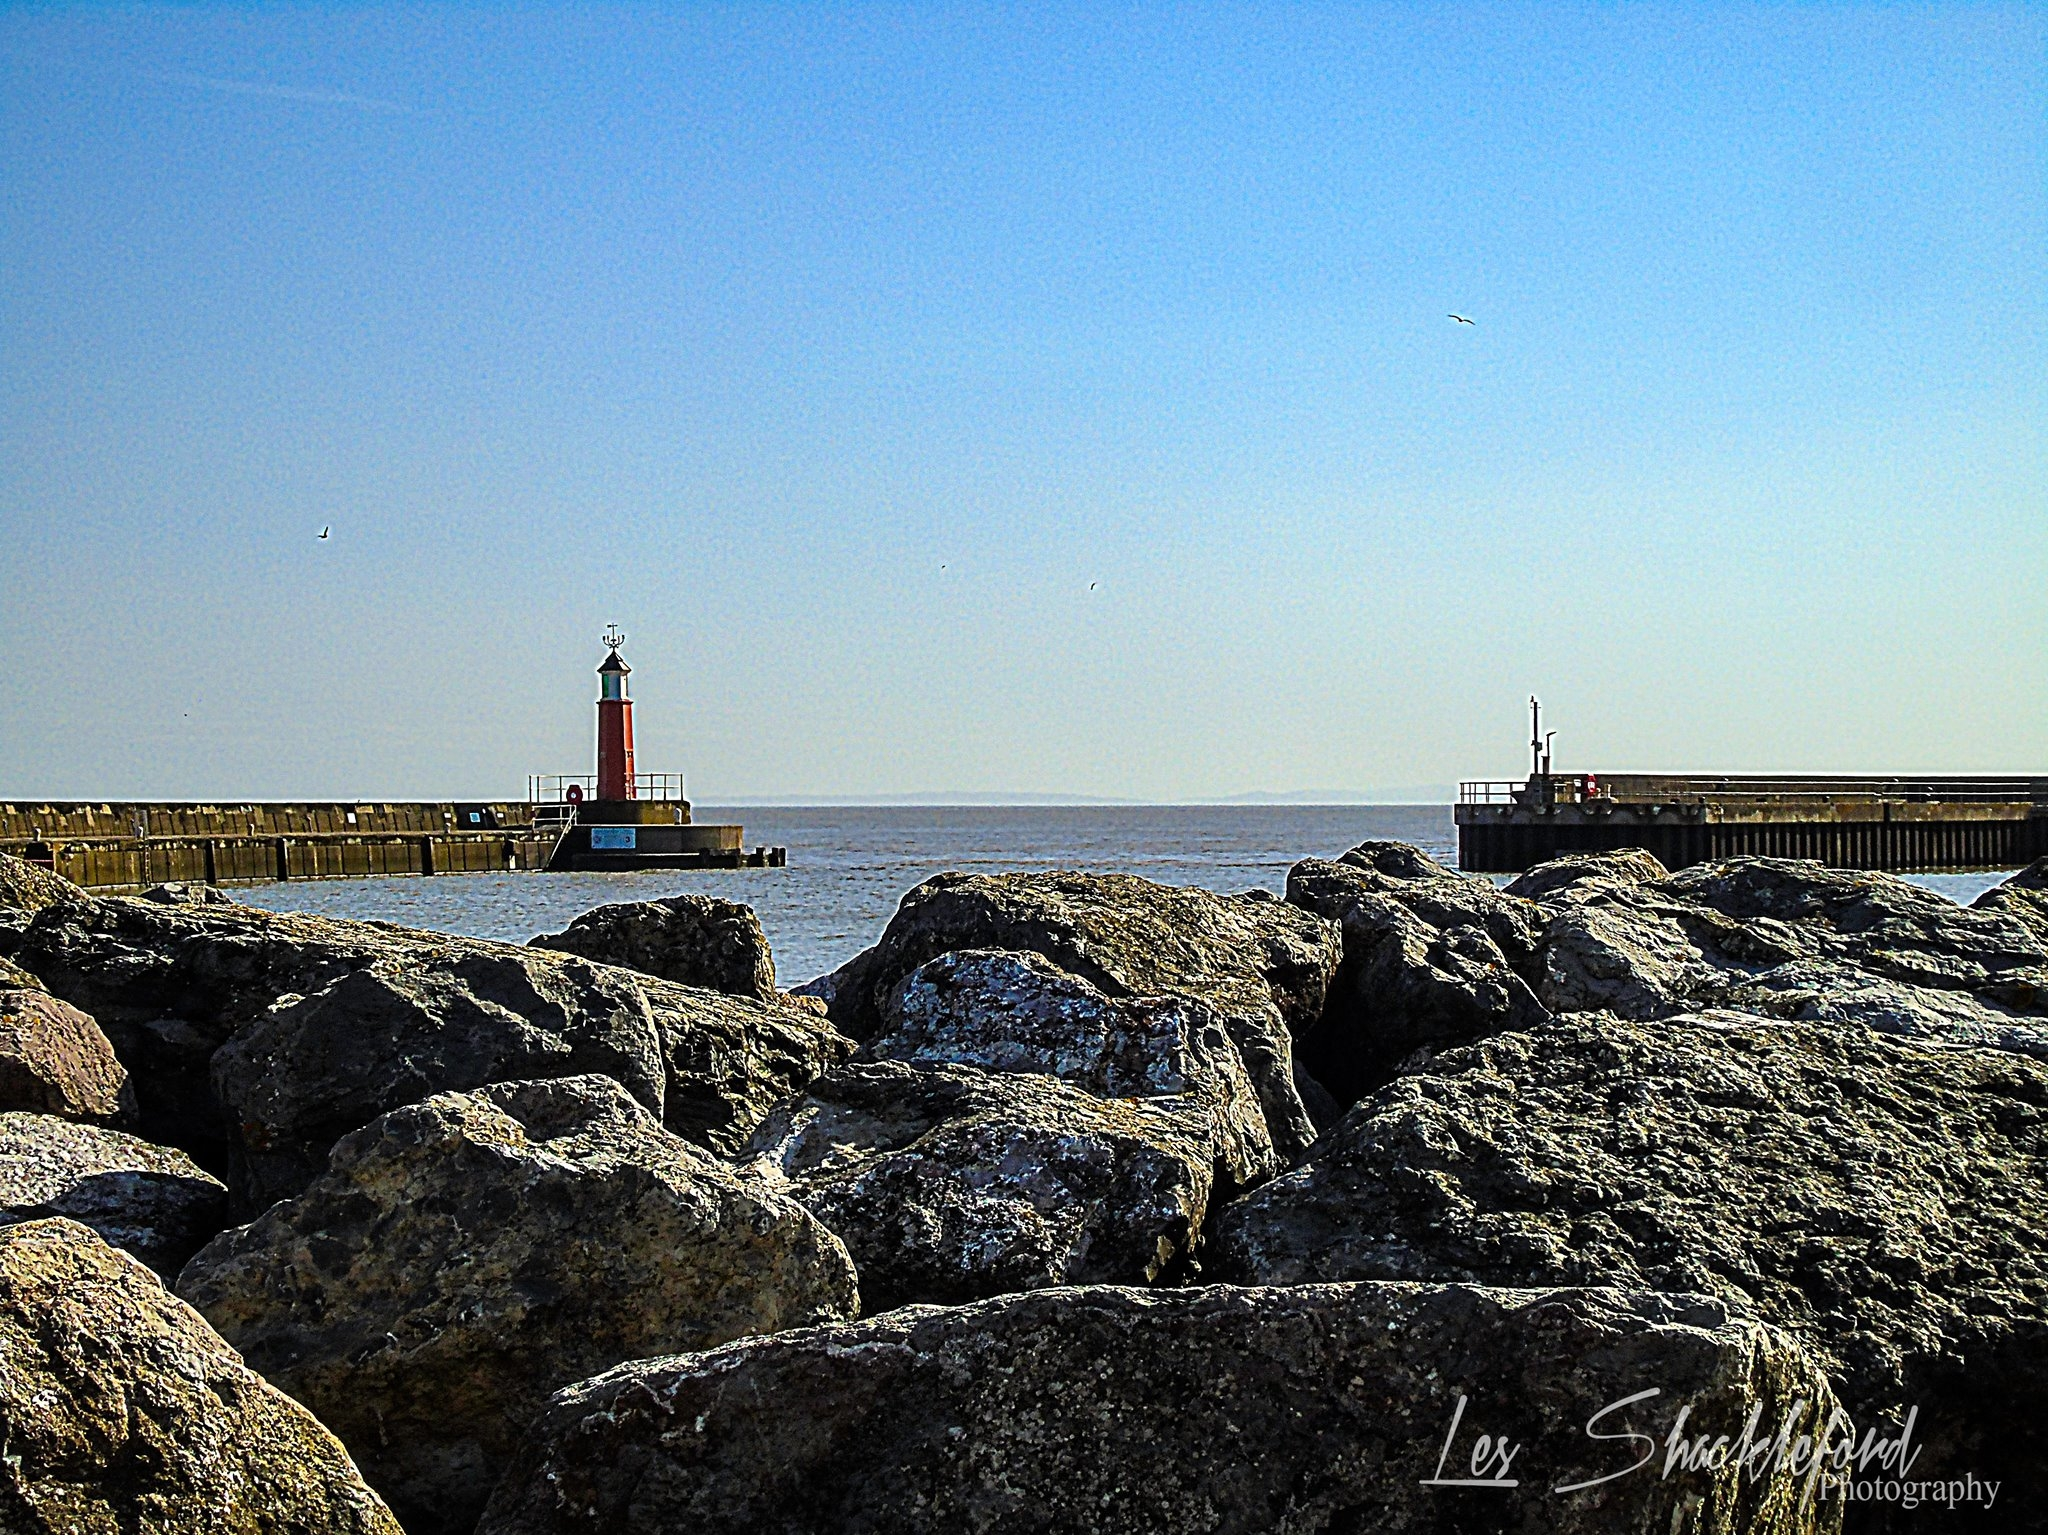 CLEAR SKIES: The entrance to Watchet Harbour by Les Shackleford - Somerset Camera Club